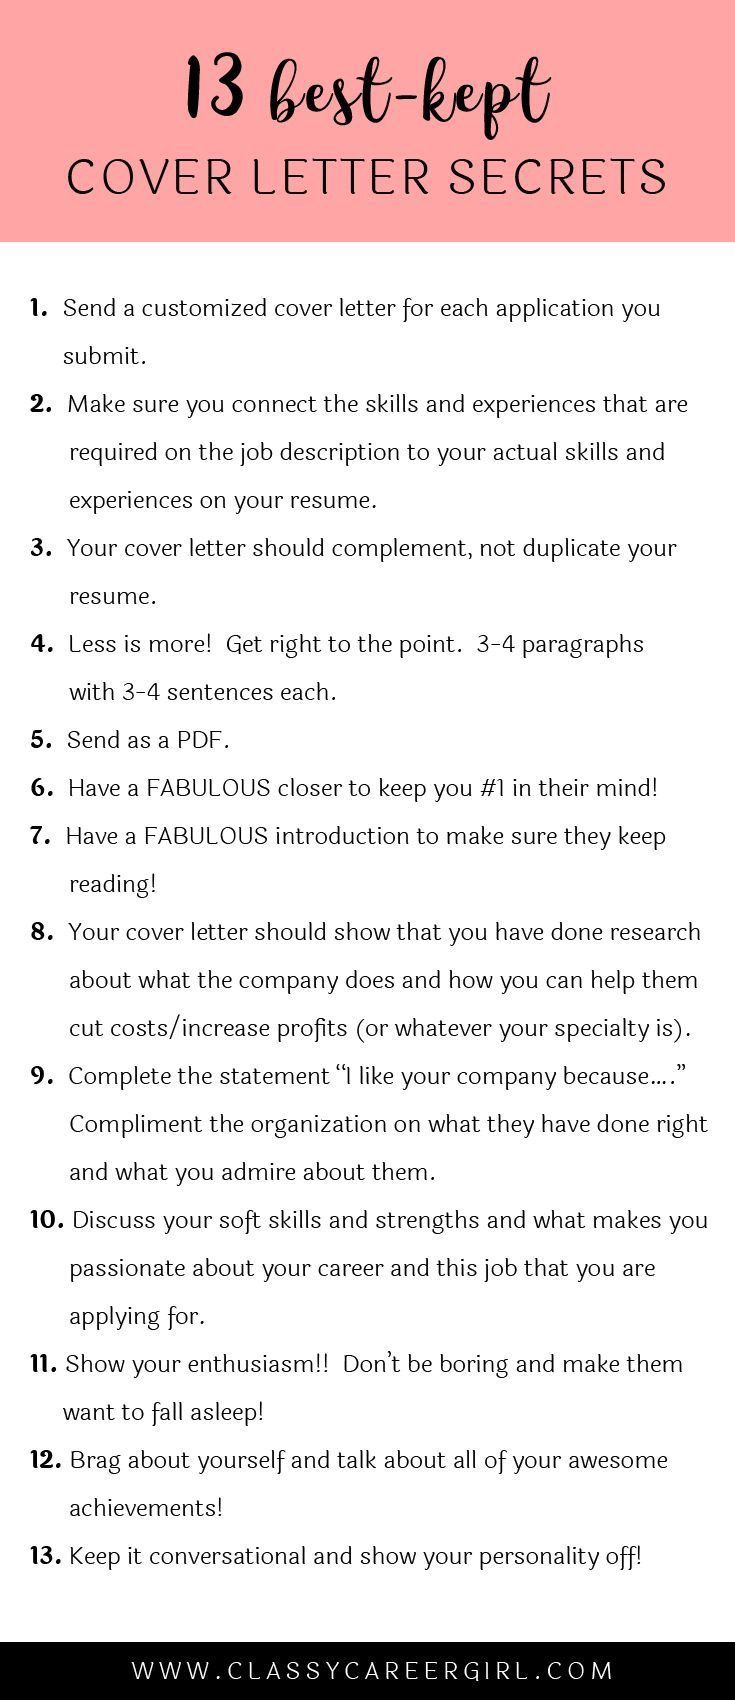 A Cover Letter For A Job Amusing Cover Letter Secrets  Professionalism  Pinterest  Adulting Job .